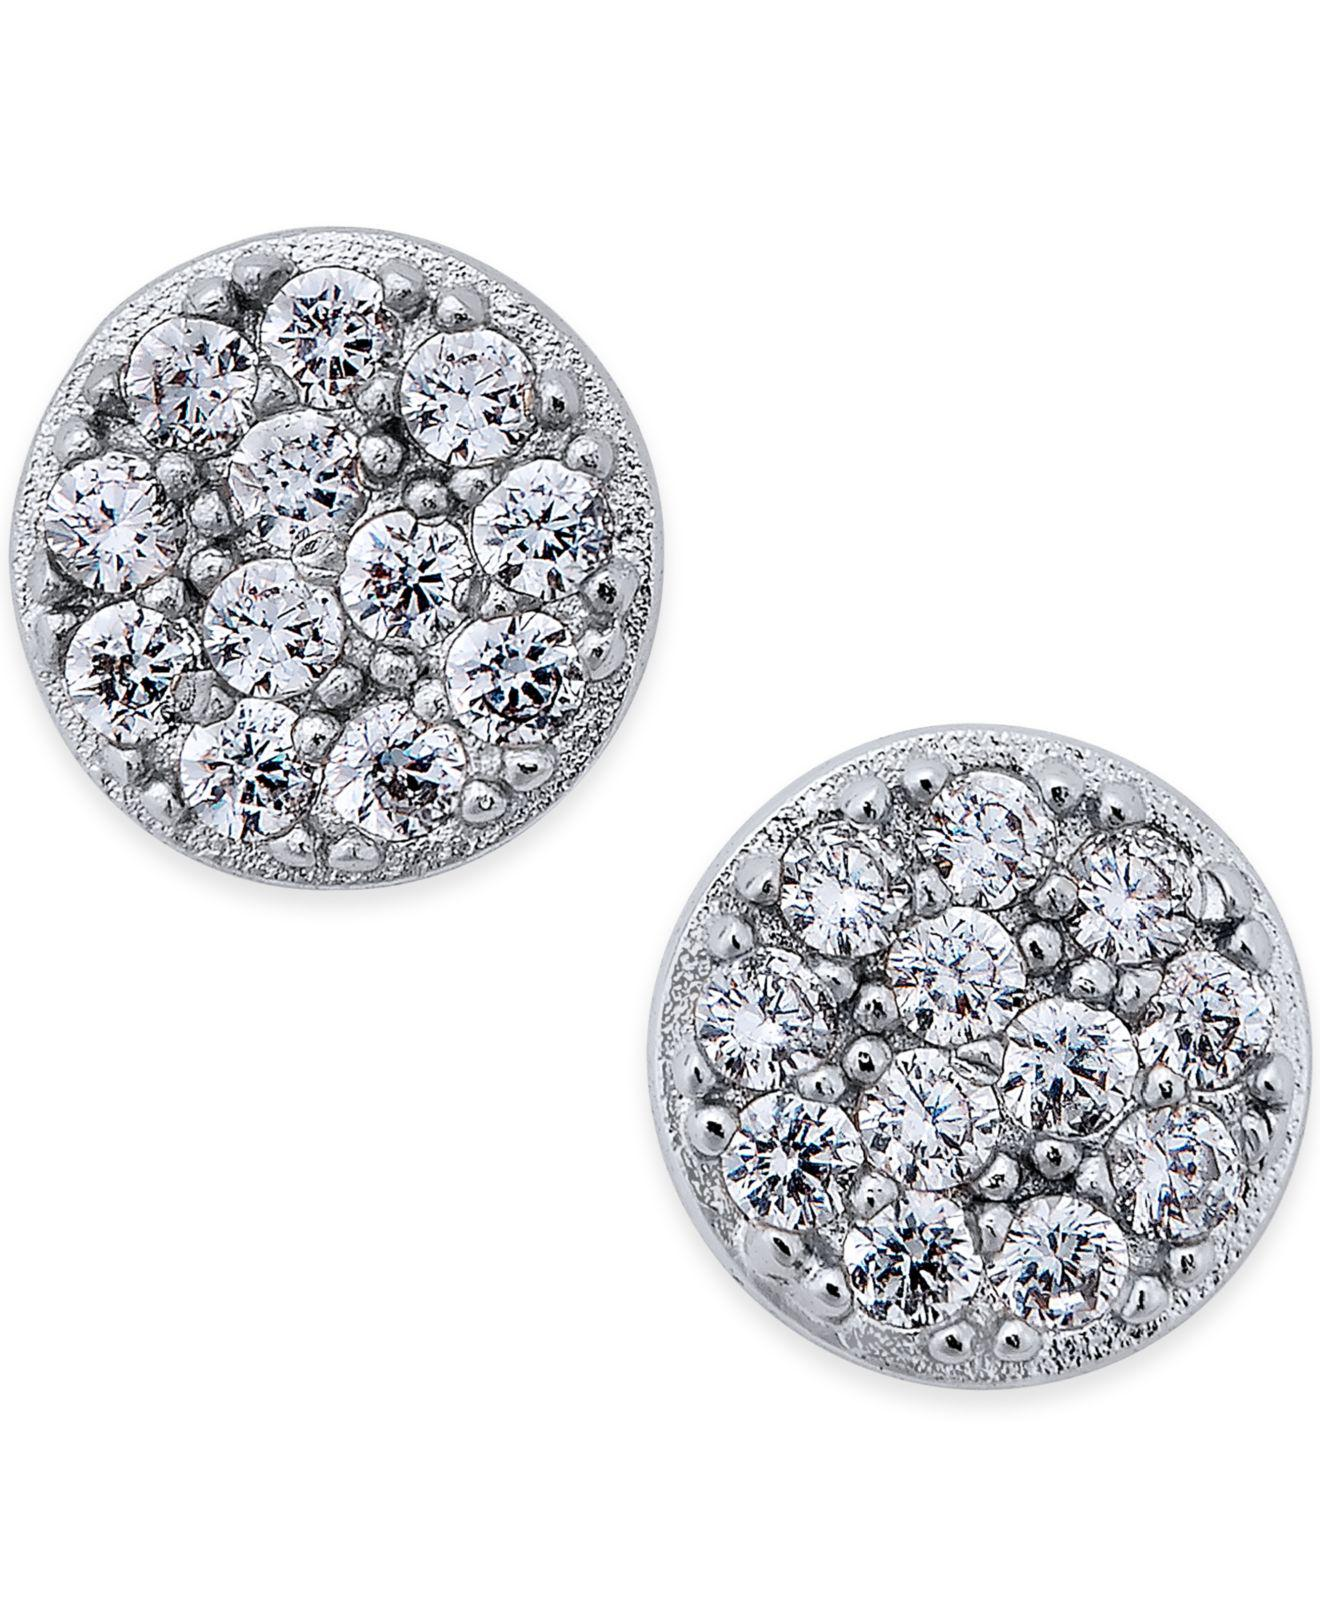 earrings czrm cut dp com amazon silver zirconia prong stud cubic tone magnetic round jewelry clear in